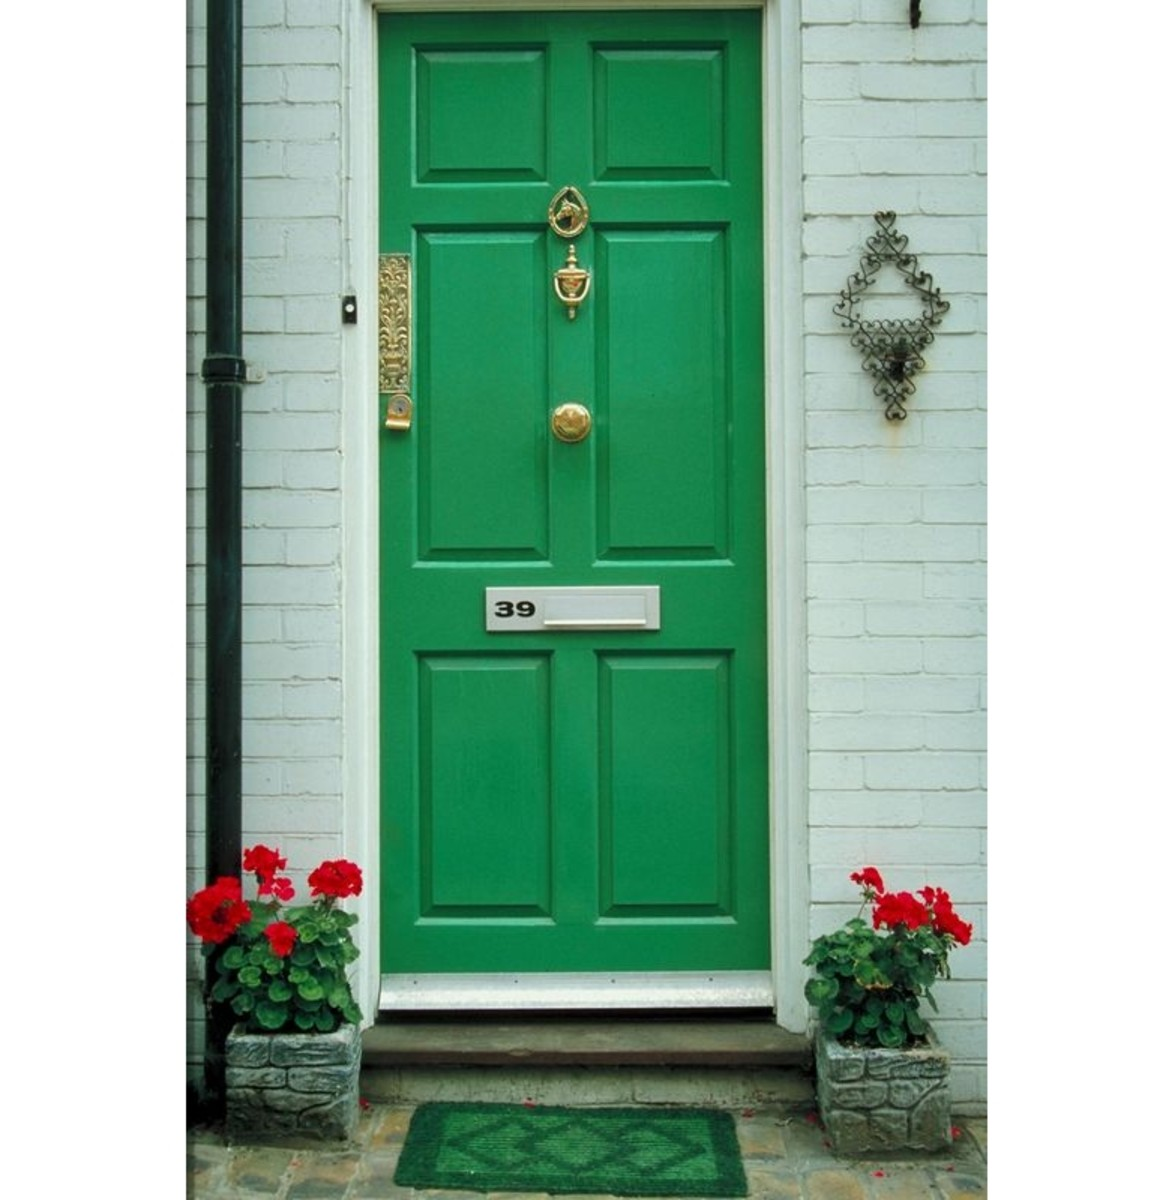 Green is a common color for both interiors and furniture, and it looks great on the outside of a house as well. Green is a refreshing hue to welcome guests, whether in a bold or neutral tone.